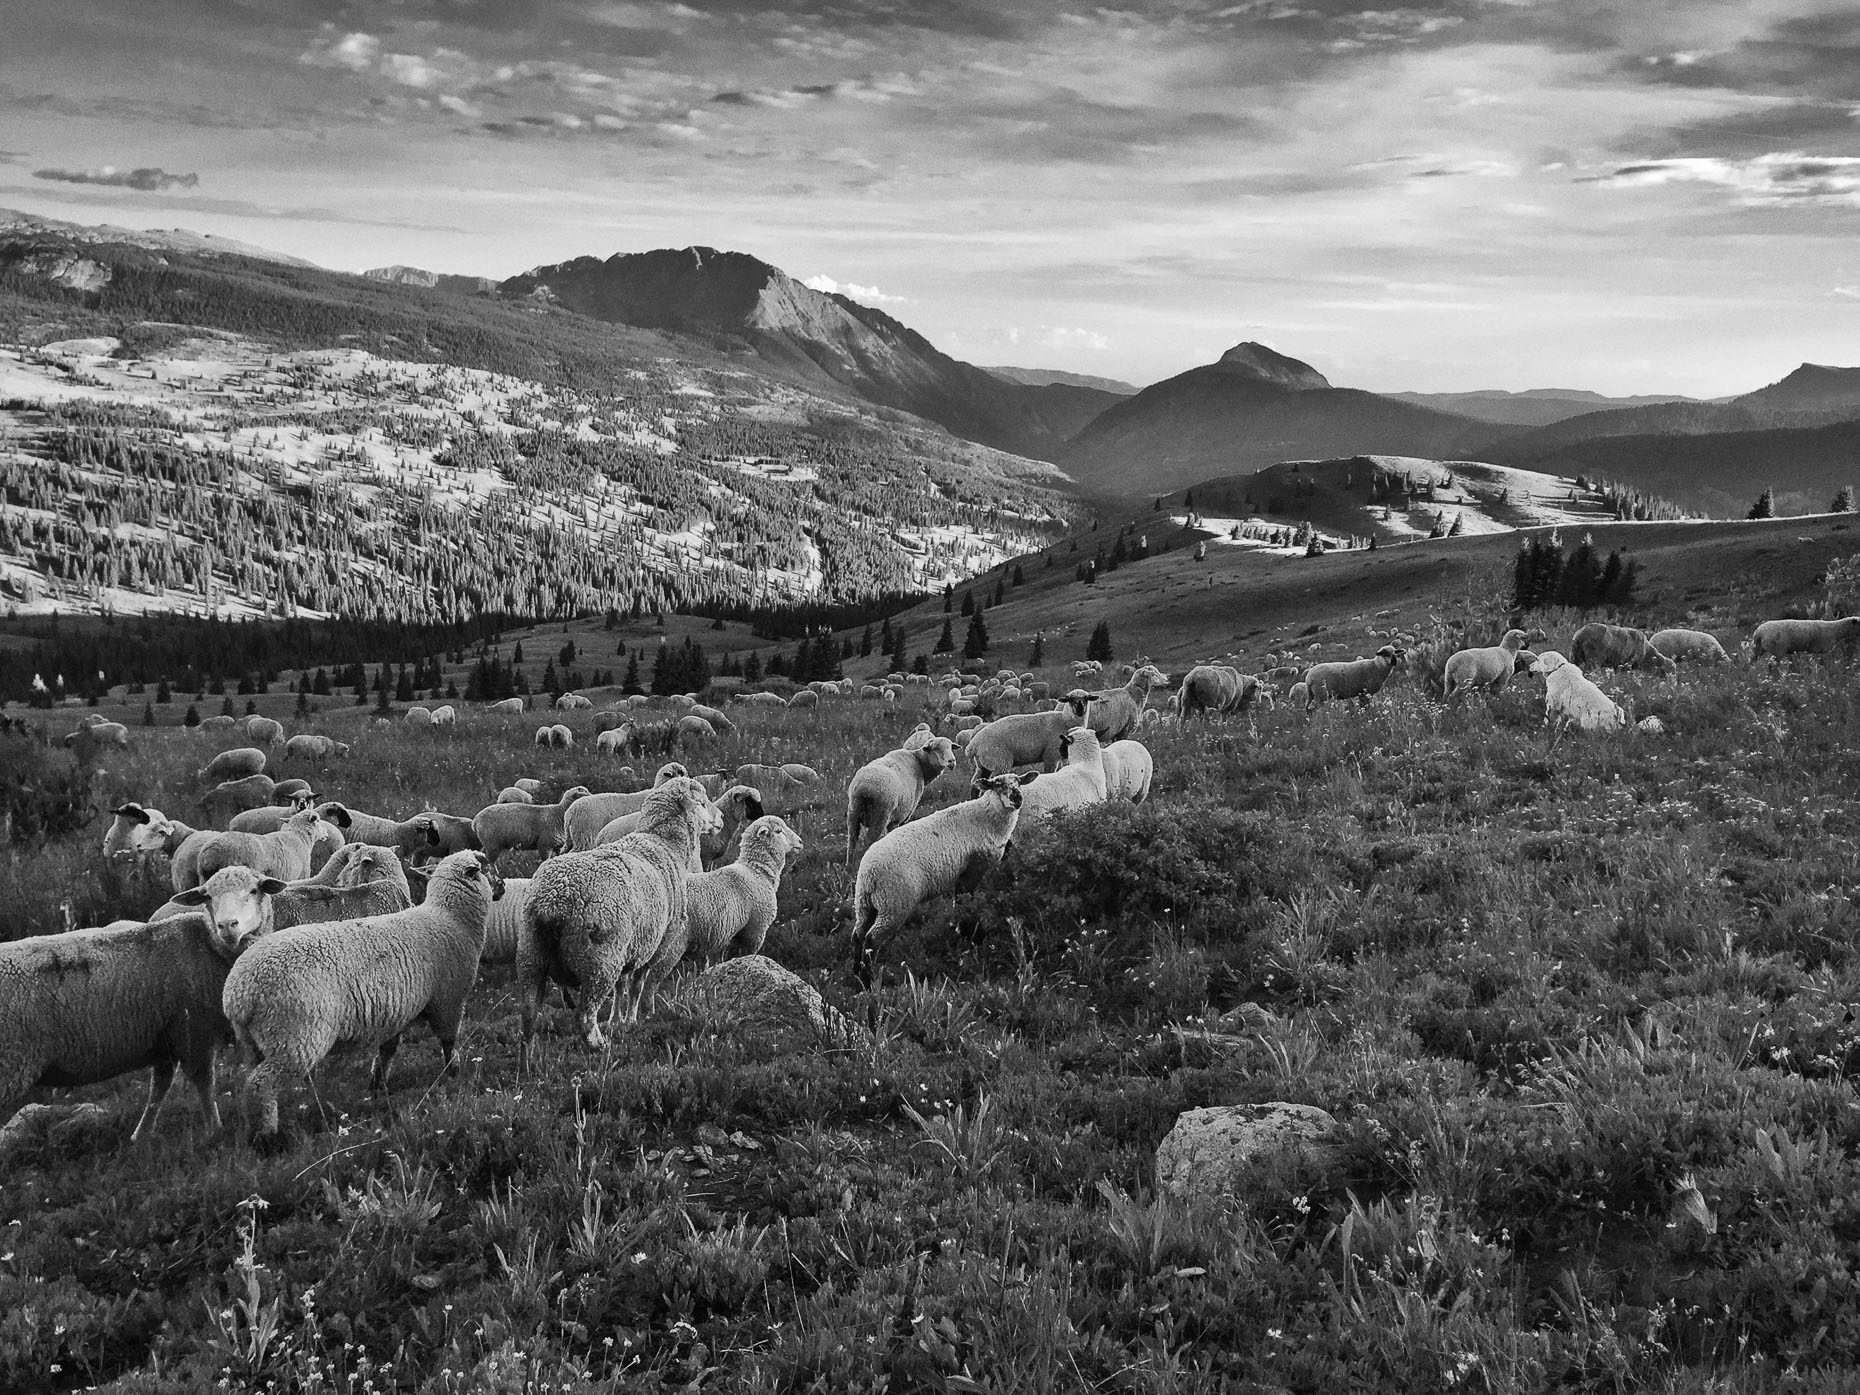 Molas Pass Sheep